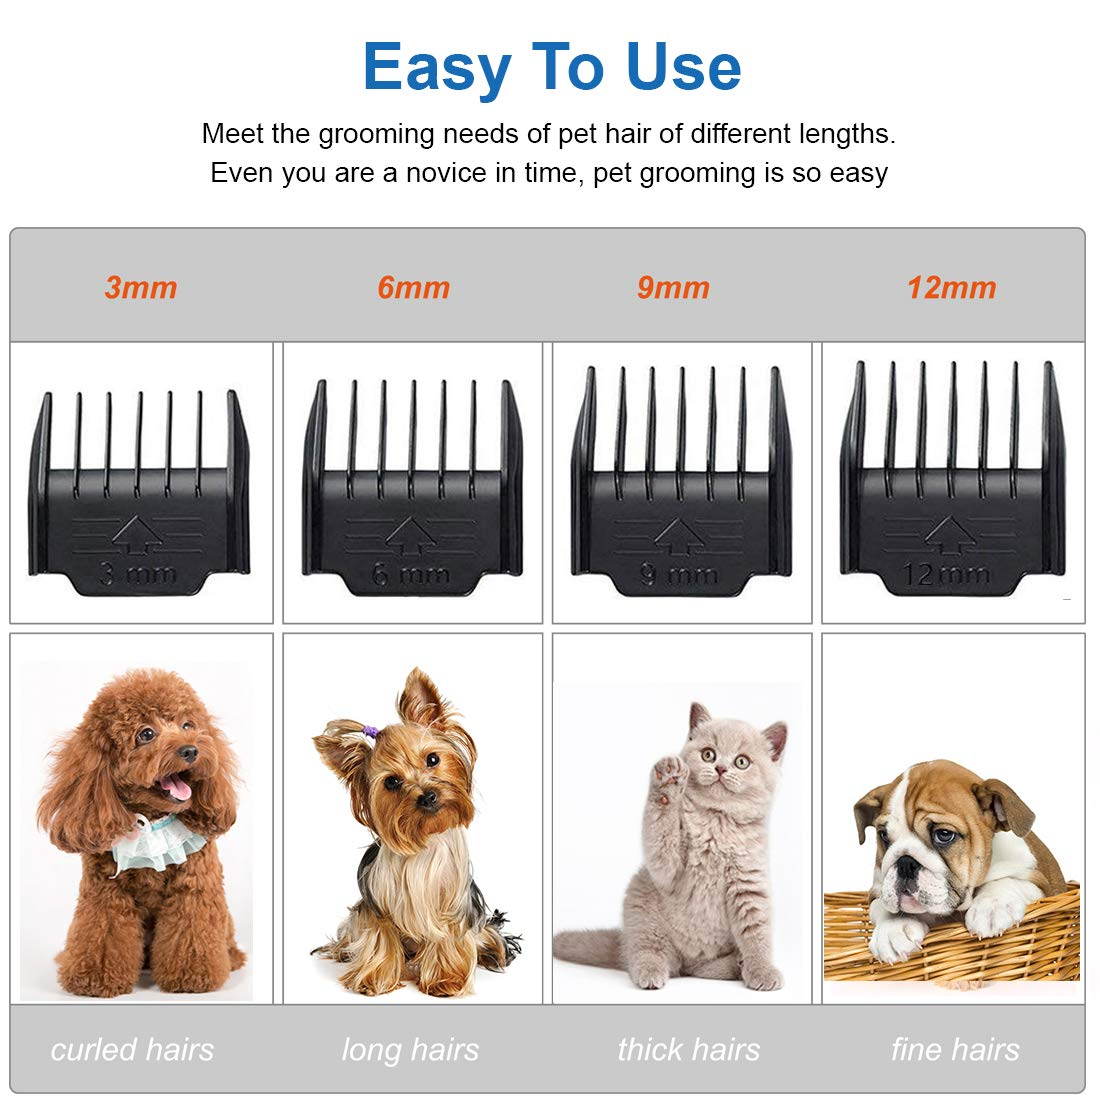 YIDON Dog Clippers Dog Grooming kit Cordless Adjustable Pet Clippers Dog Hair Trimmer Rechargeable Dog Shears Pet Grooming Professional Hair Clippers Low Noise for Small Large Dogs,Cats,All Pets